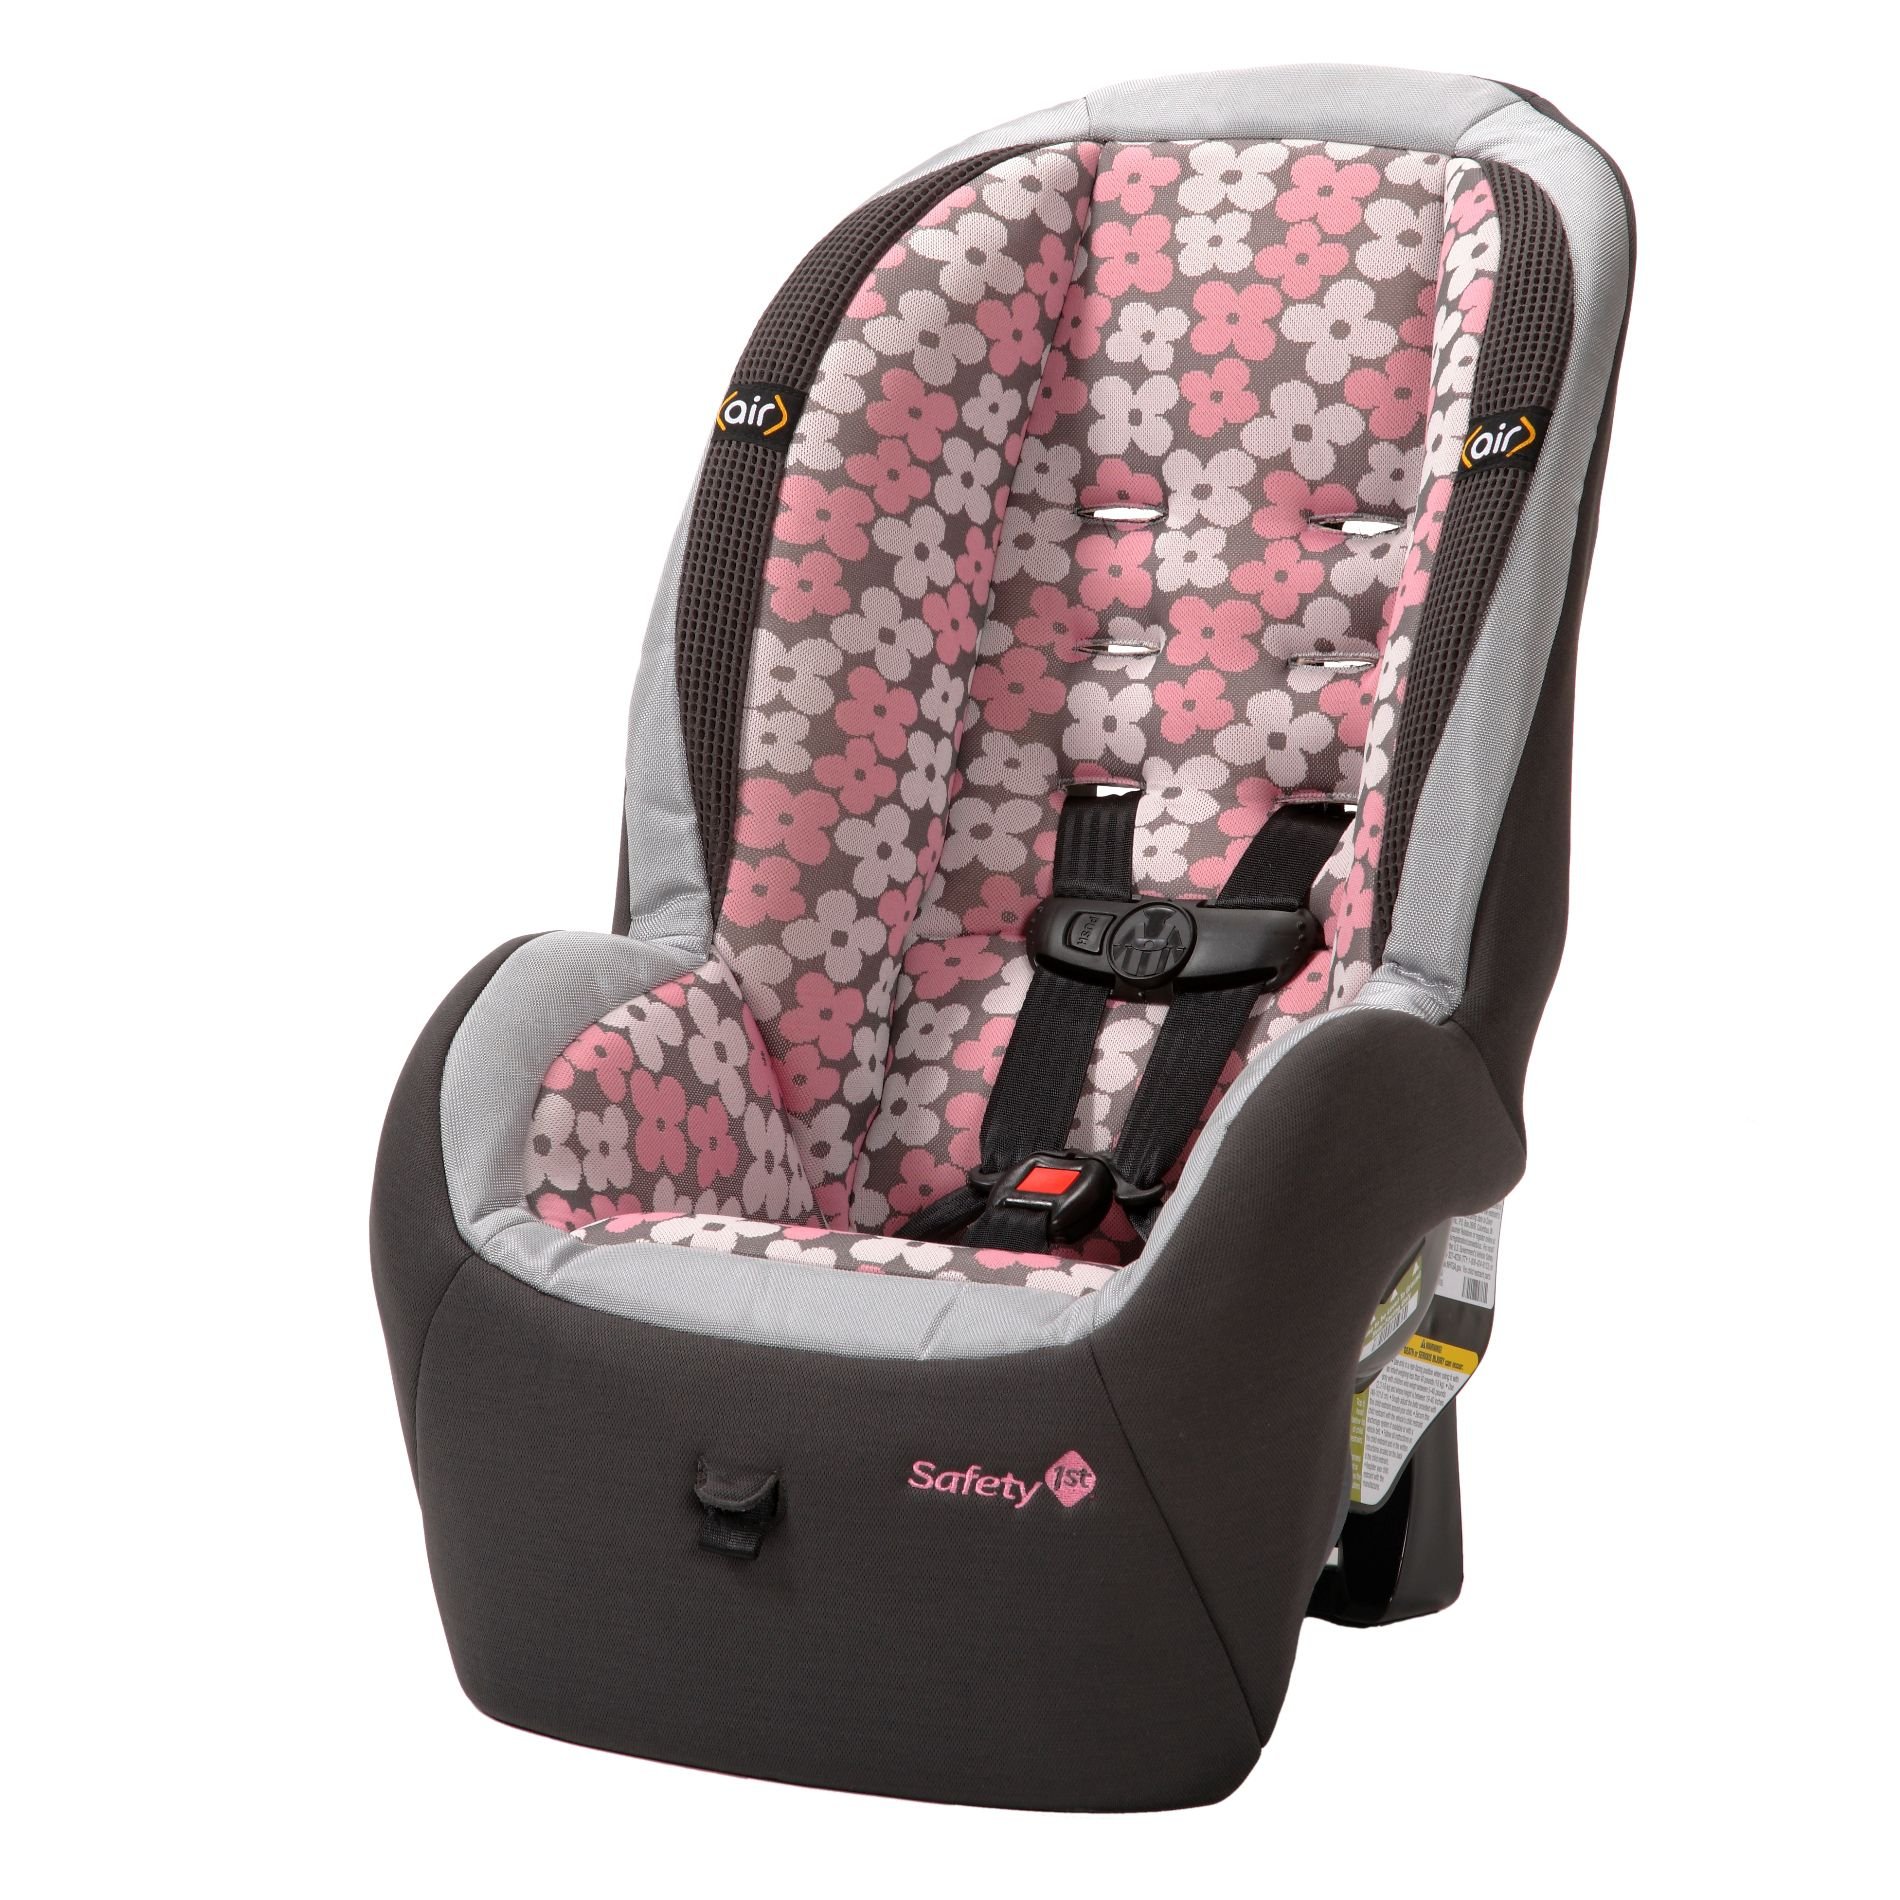 onSide Convertible Car Seat - Adeline